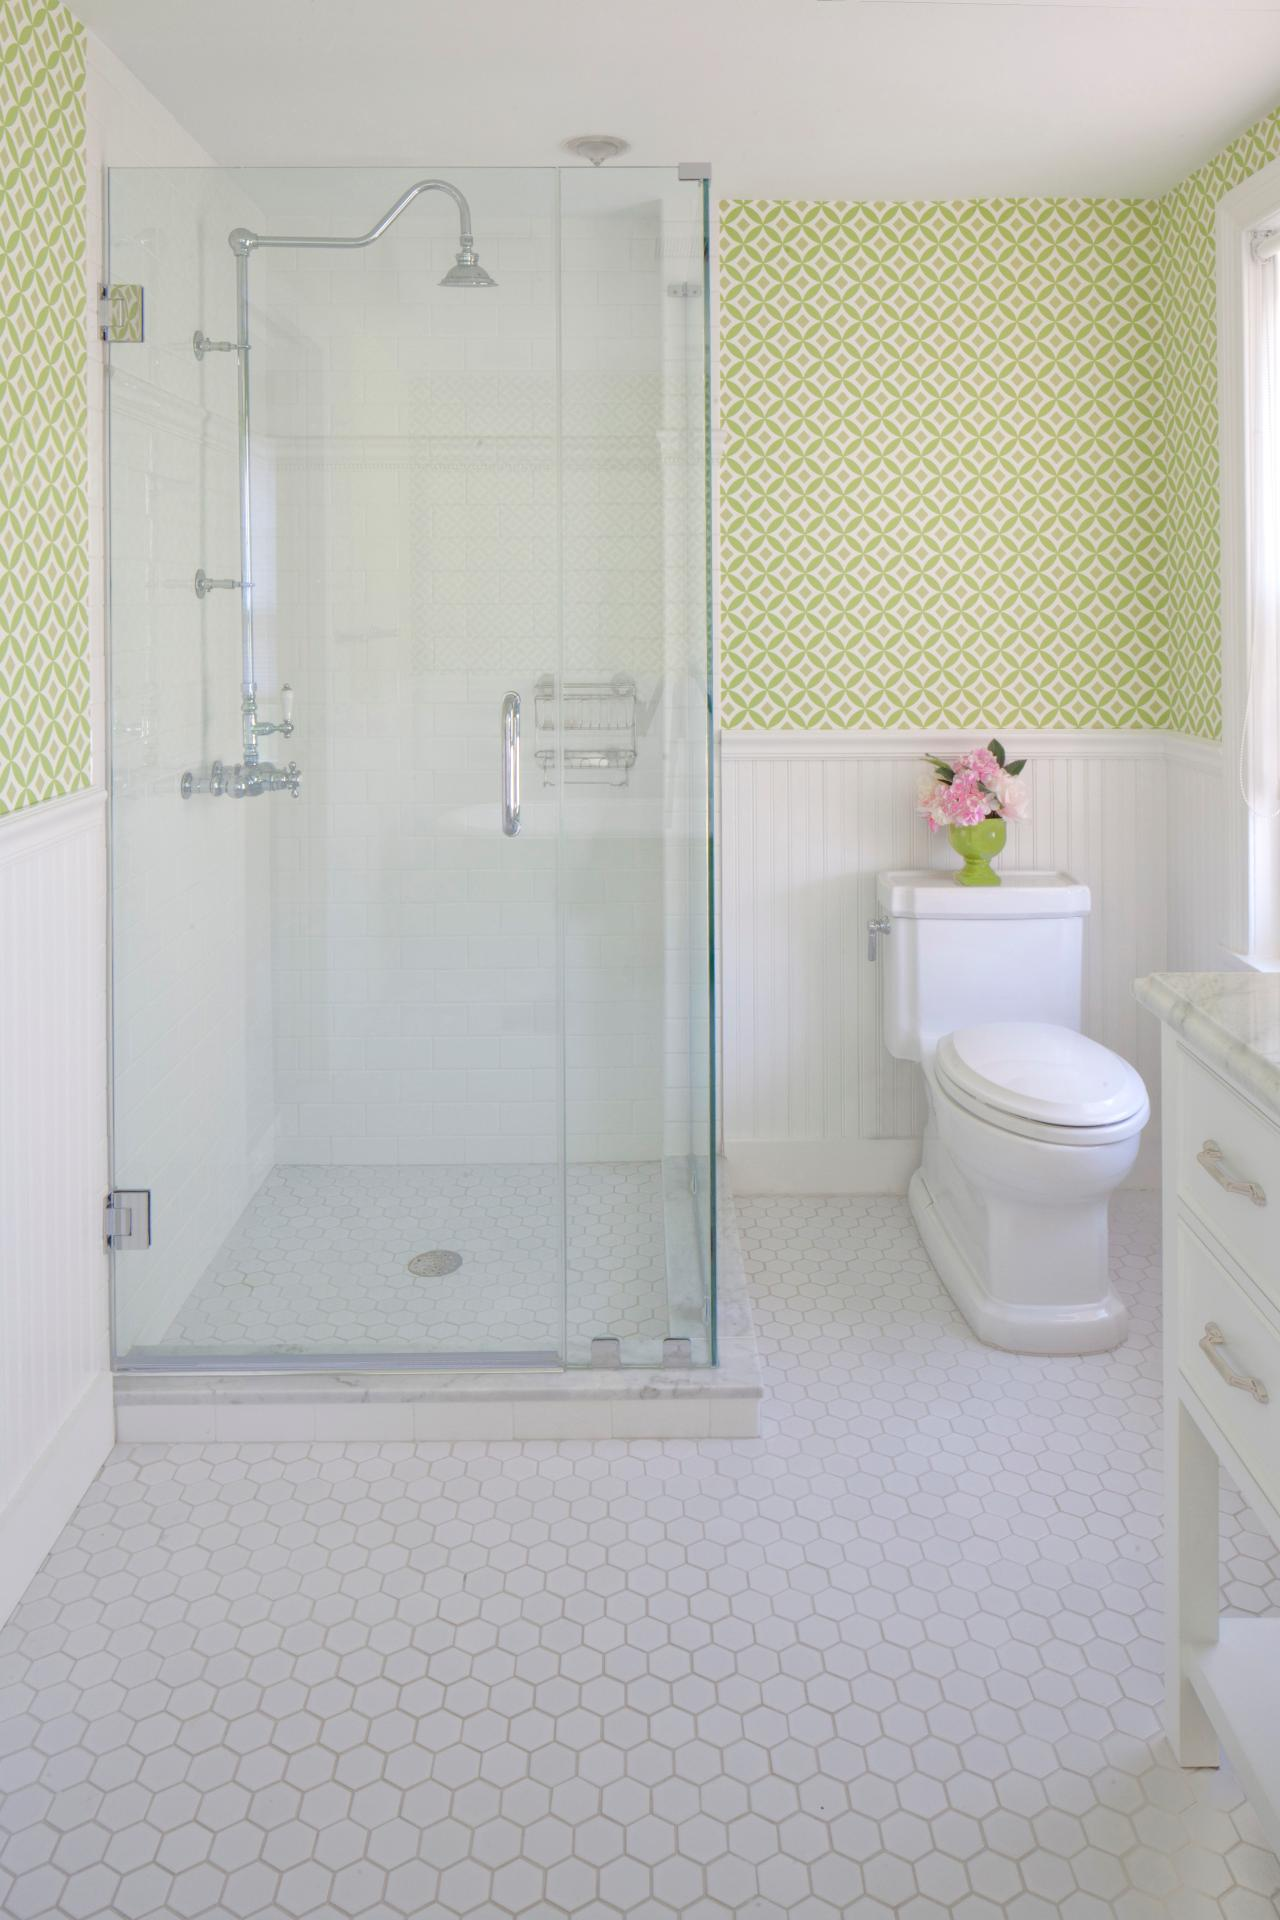 Amy-Cuker_Girls-Vintage-Bath-Philly_Glass-Shower.jpg.rend.hgtvcom.1280.1920